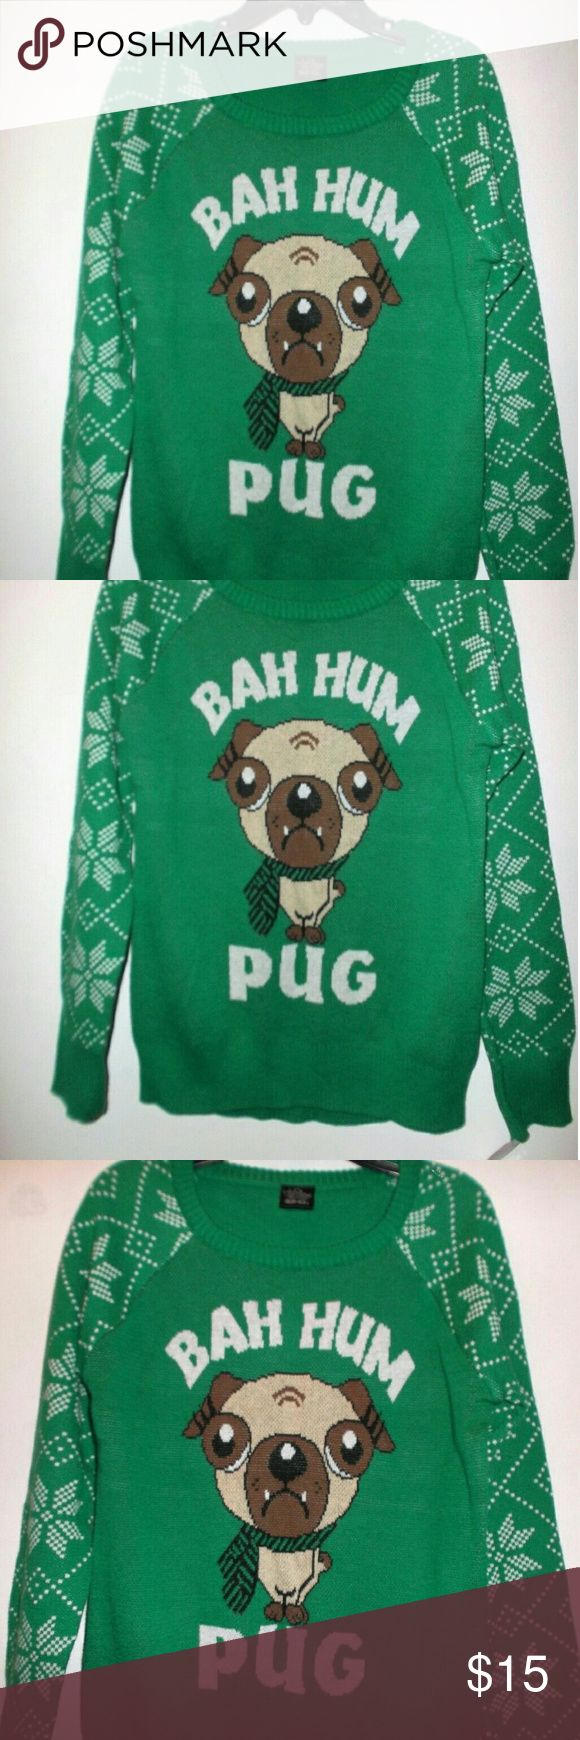 Bah Hum Pug Dog Christmas Sweater Girls Small 6 6X New with tags!   An adorable sweater by LOL Vintage.   Girls Size Small 6/ 6X.   100 % cotton.   Measures 13.5 inches across the front from underarm to underarm unstretched.  18 inches shoulder to bottom hem LOL  Vintage Shirts & Tops Sweaters